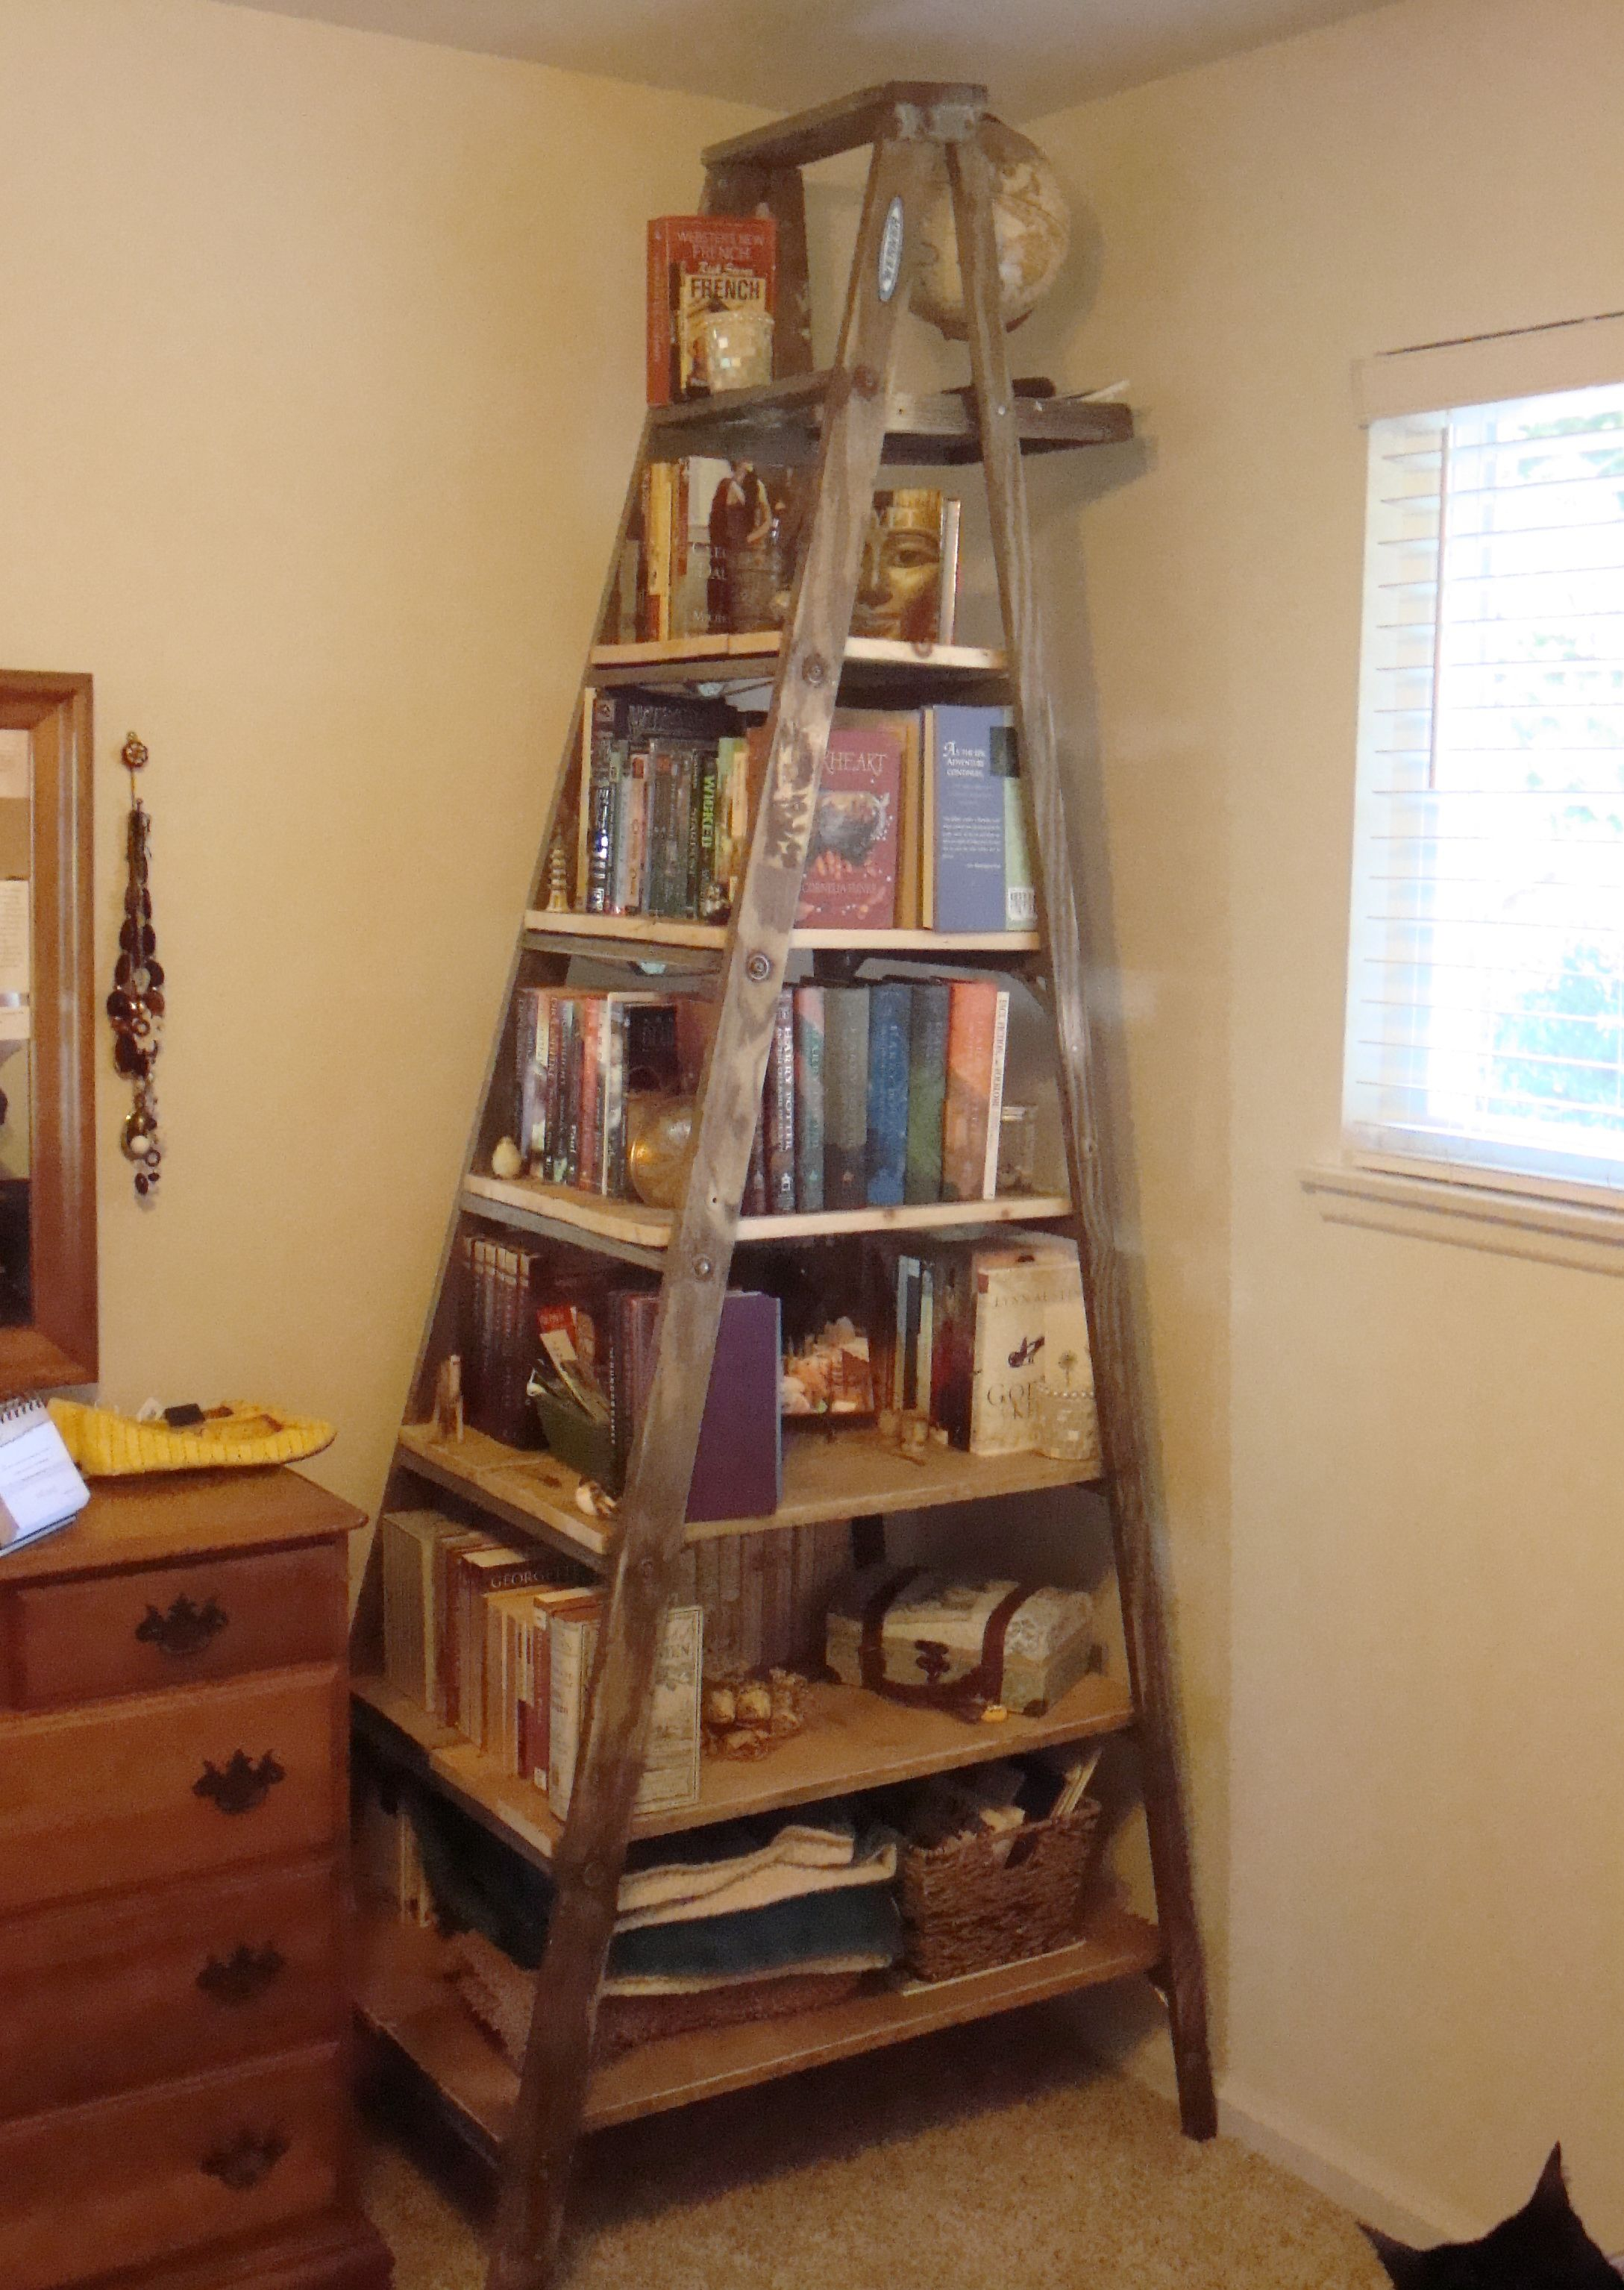 I made this book shelf out of an old ft wooden ladder and some